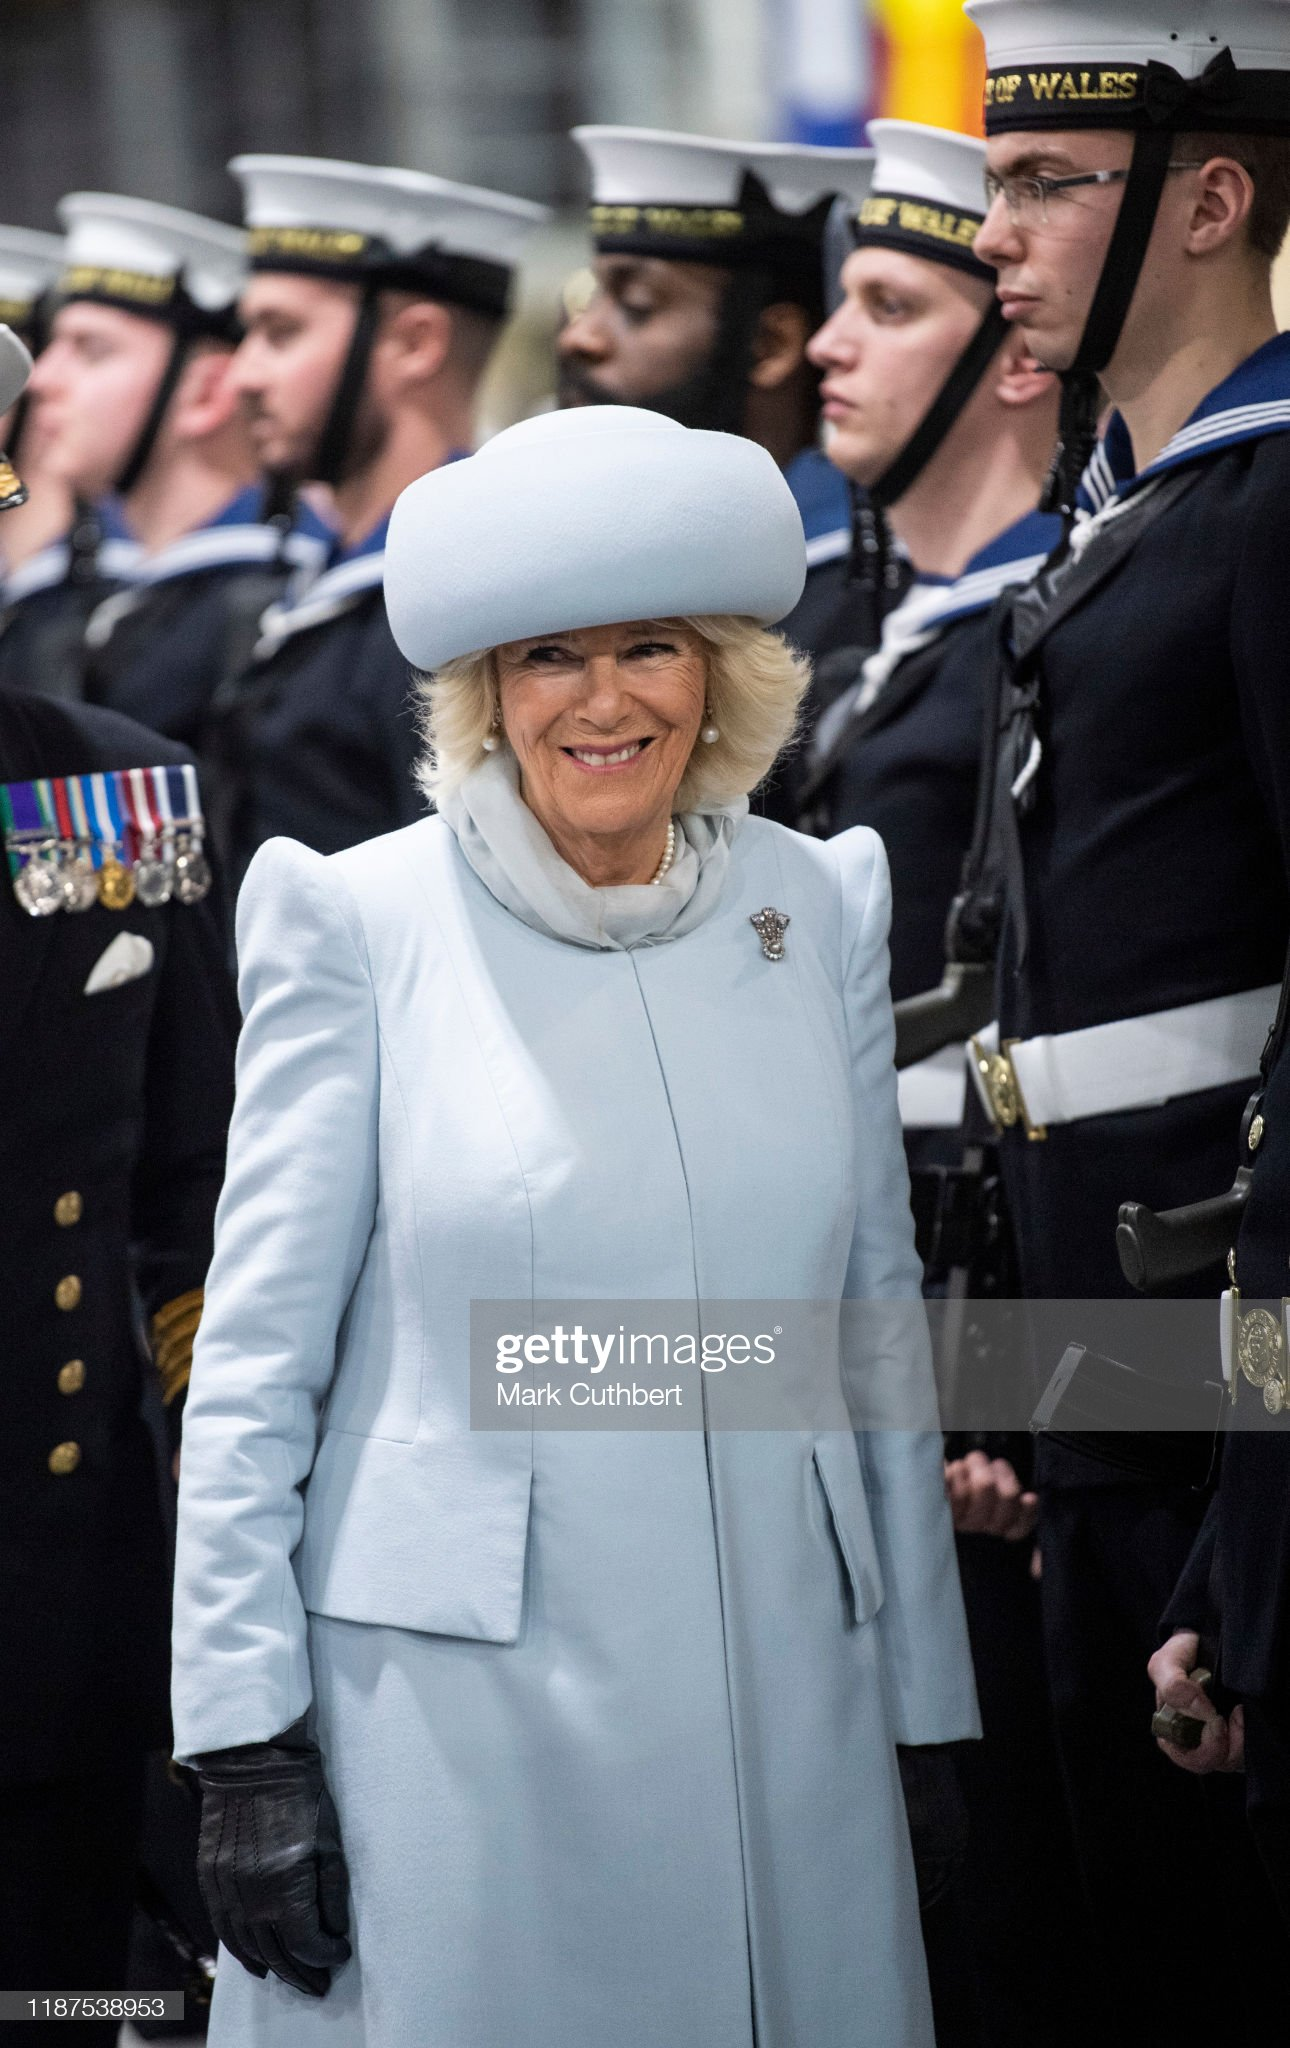 camilla-duchess-of-cornwall-attends-the-official-commissioning-of-picture-id1187538953